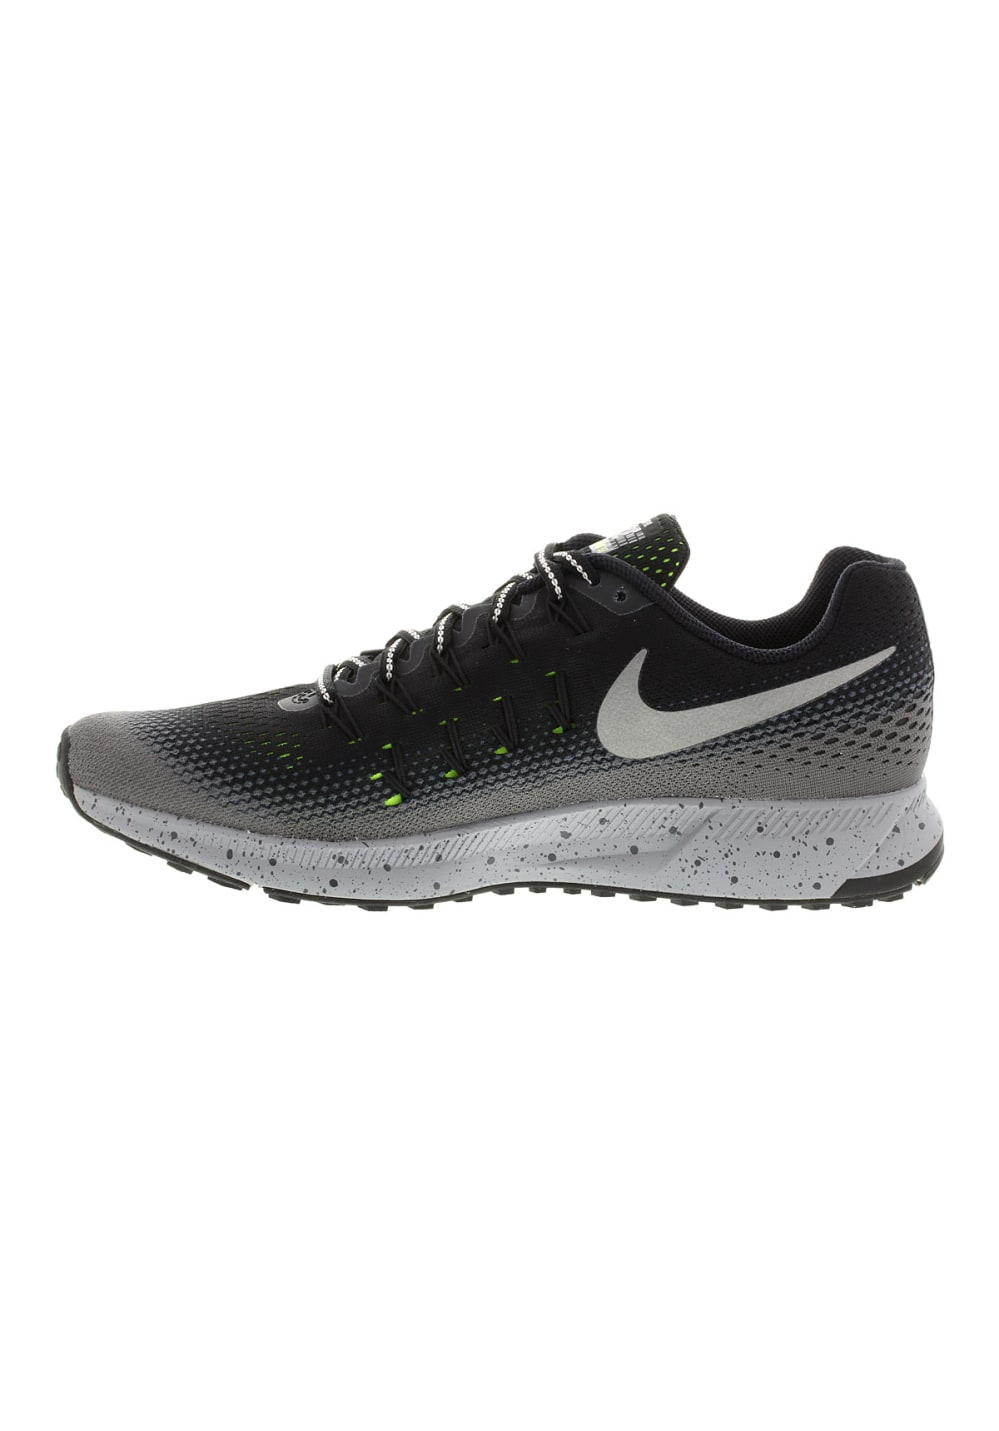 Nike Air Zoom Pegasus 33 Shield - Running shoes for Men - Black